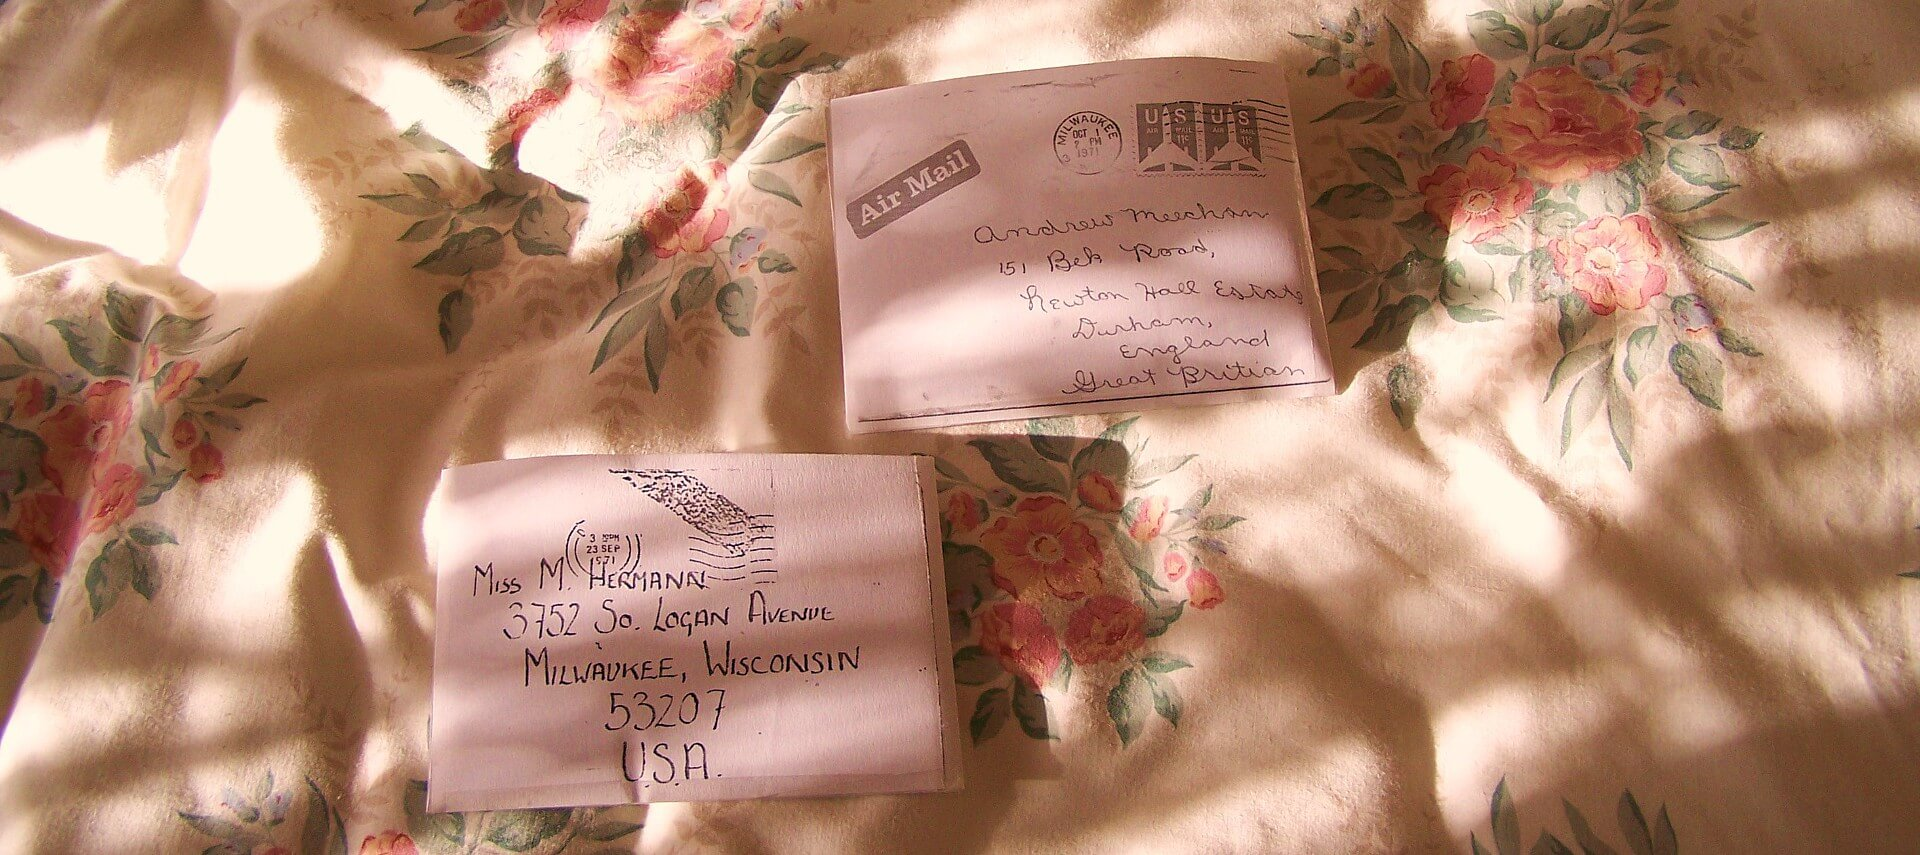 Two old letters with handwritten addresses on a cream and flowered blanket